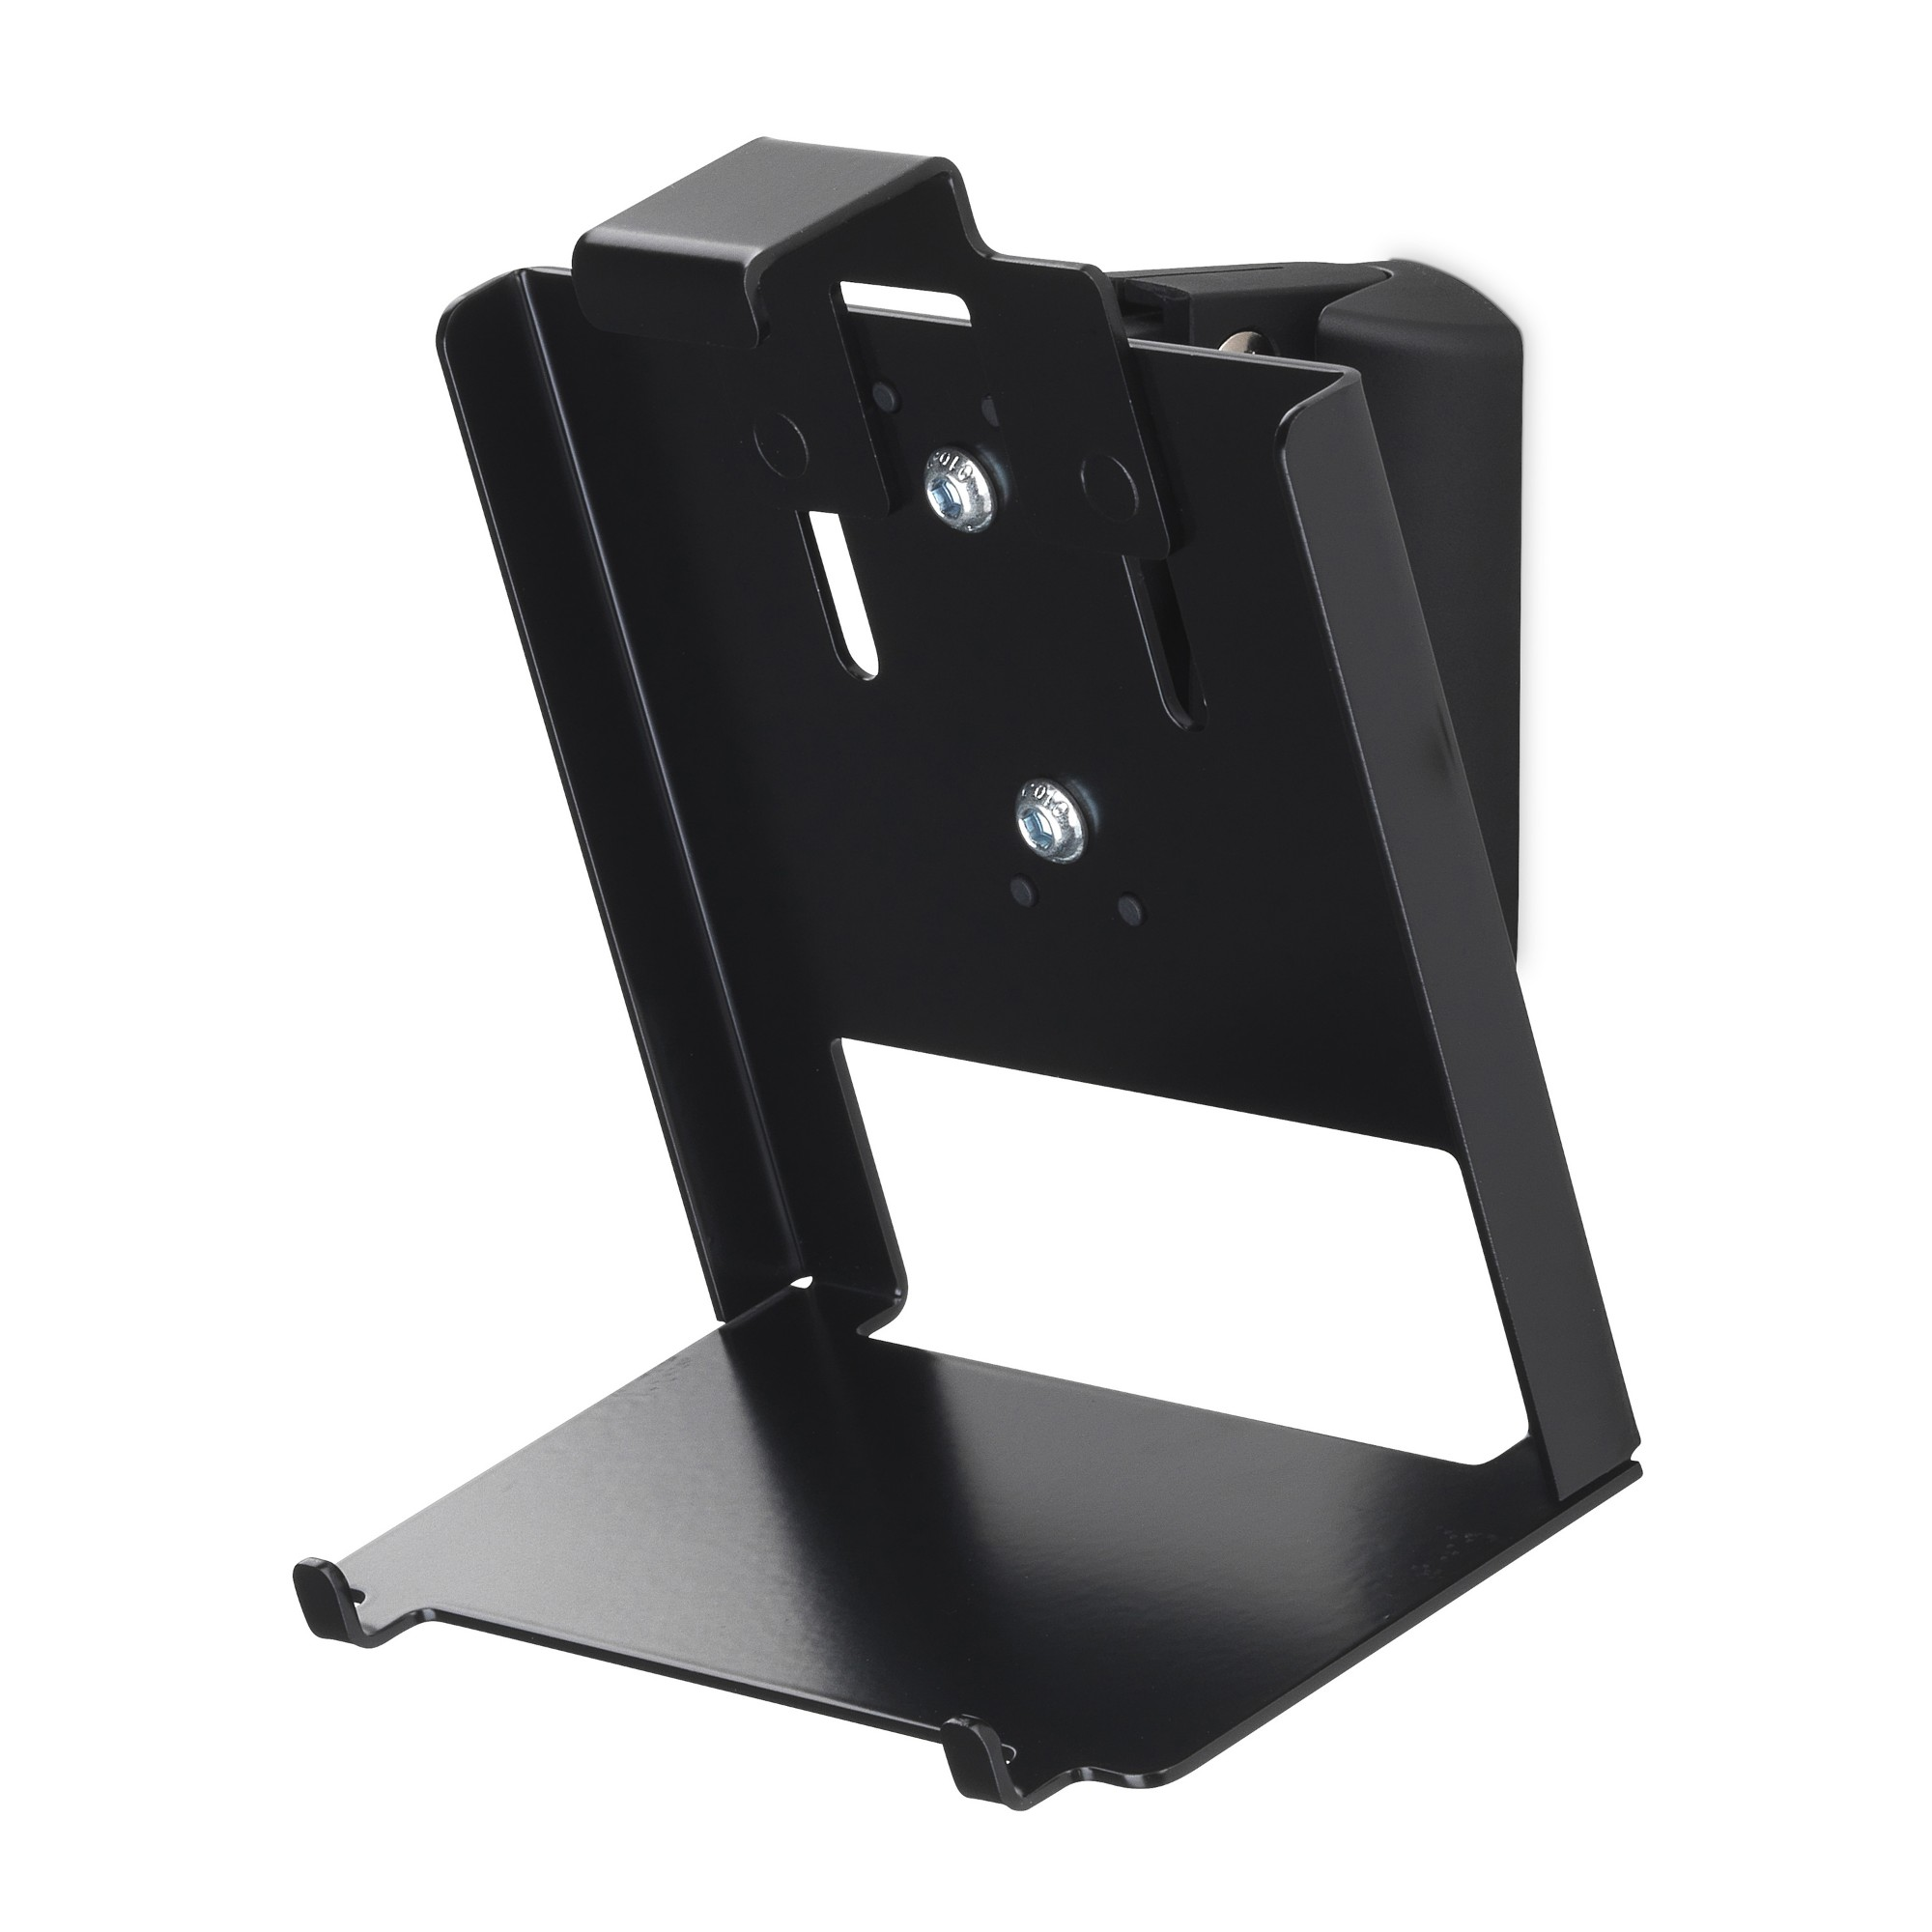 SoundXtra Wall Mount For Bose SoundTouch 20